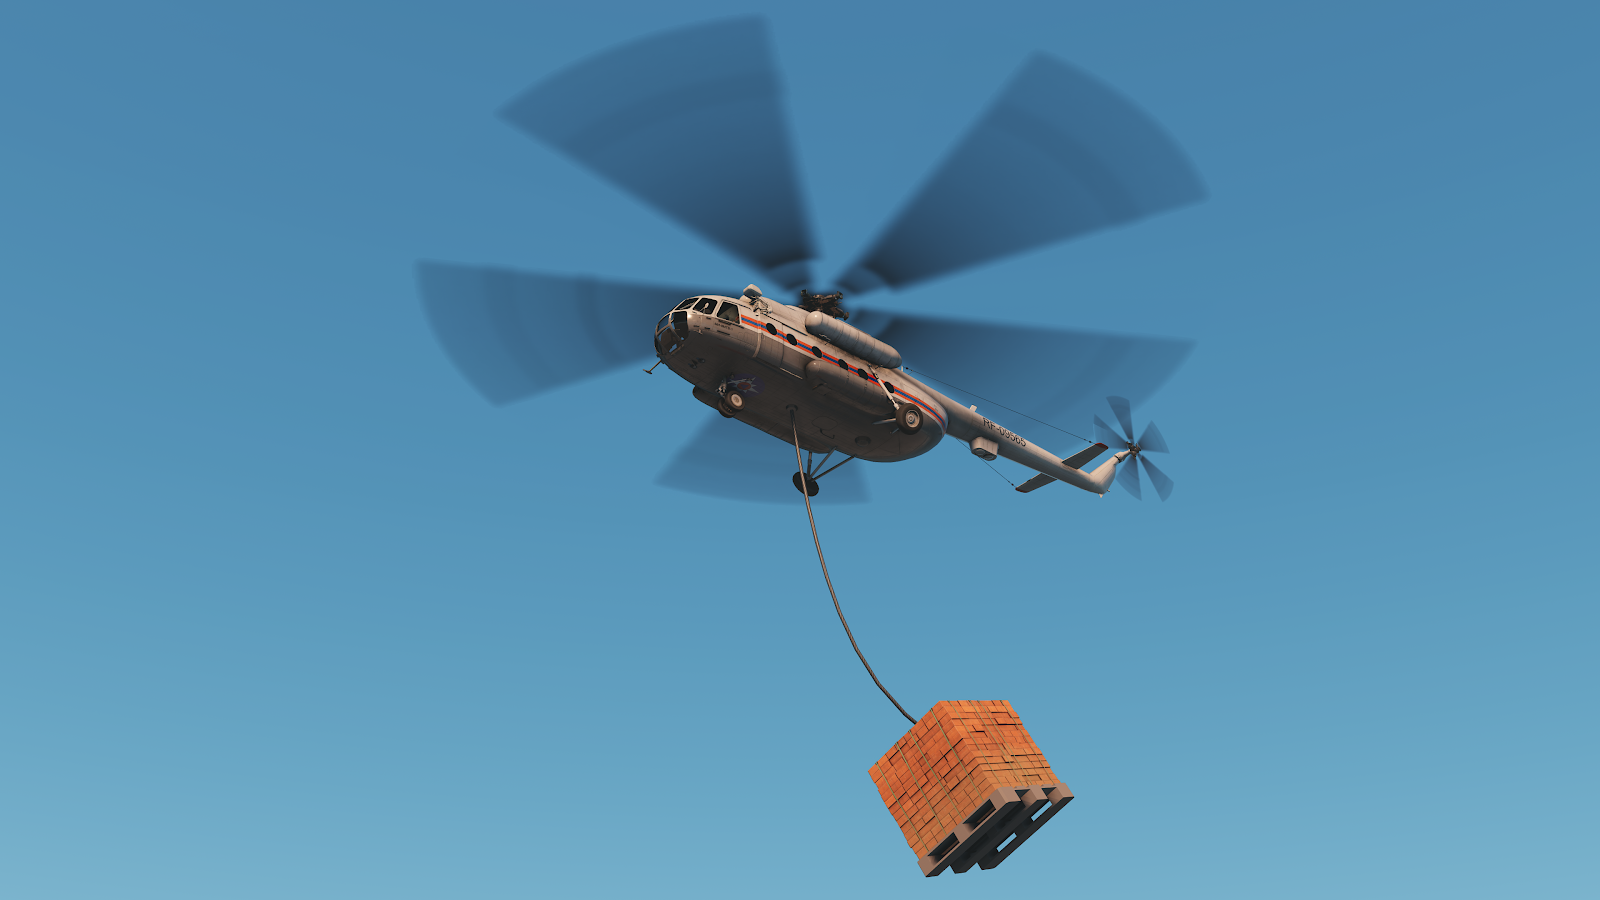 Helicopter rope 1